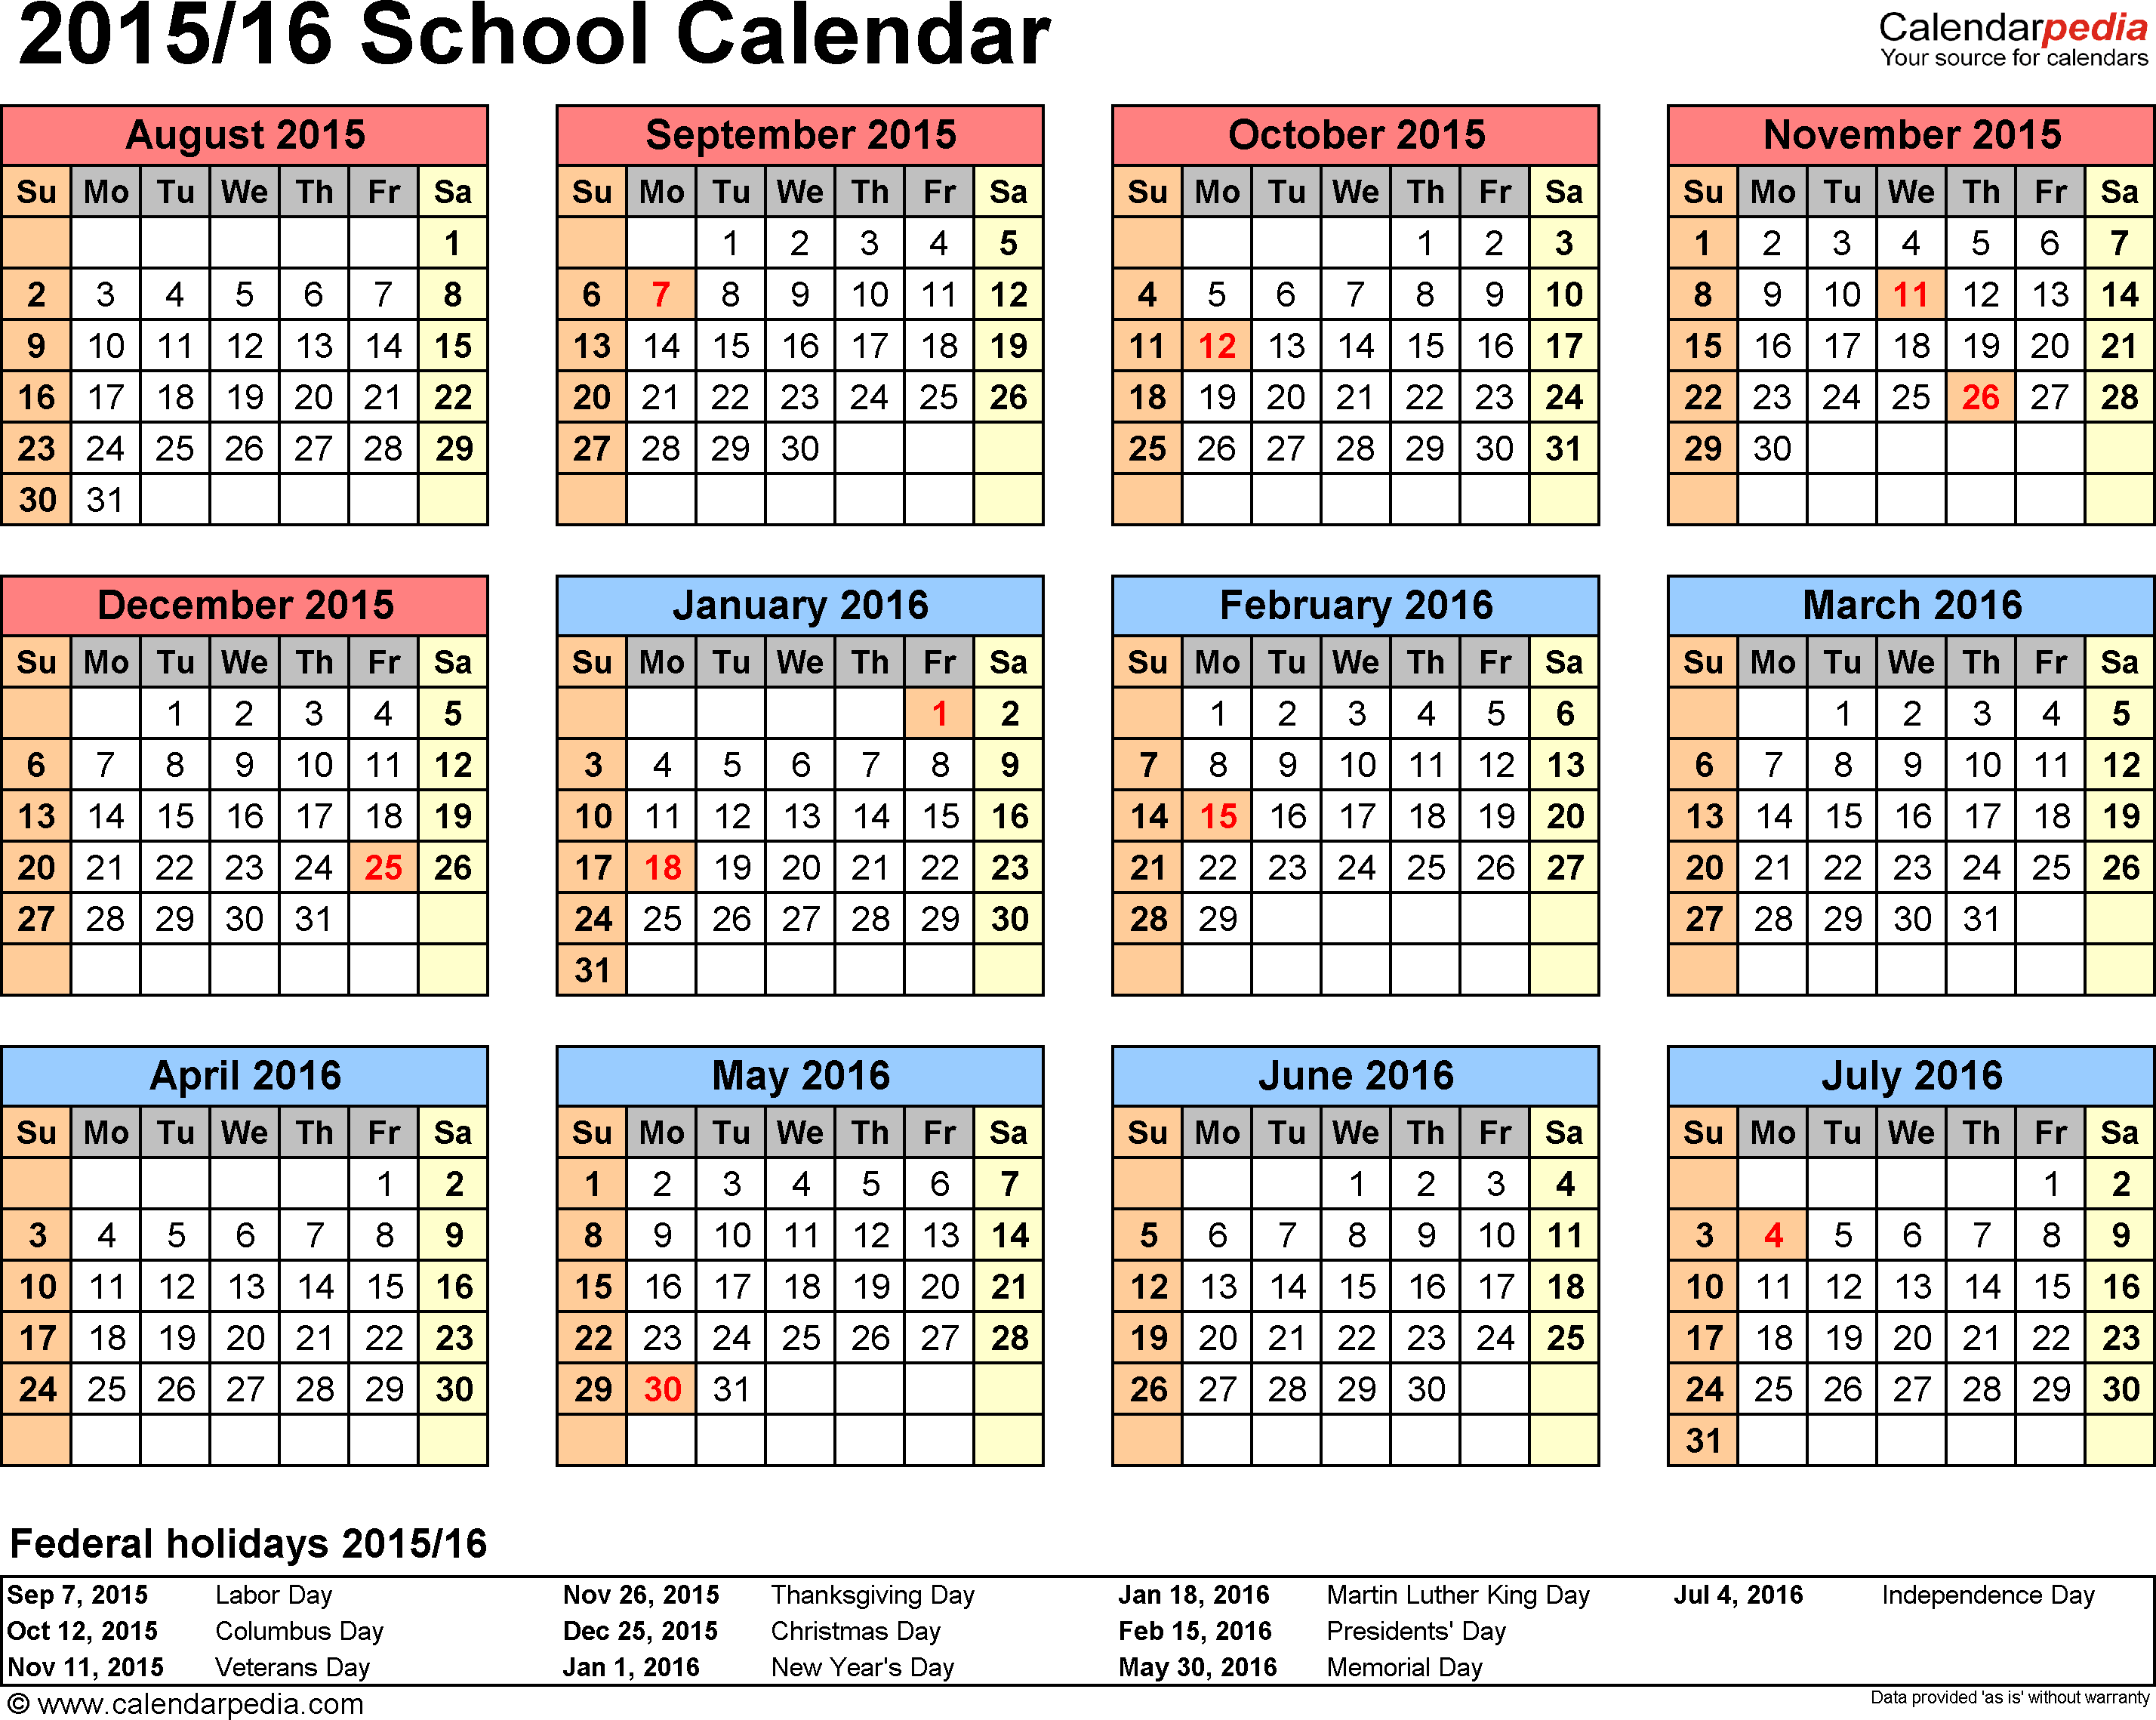 Template 4: School calendar 2015/16 for Excel, landscape orientation, year at a glance, 1 page